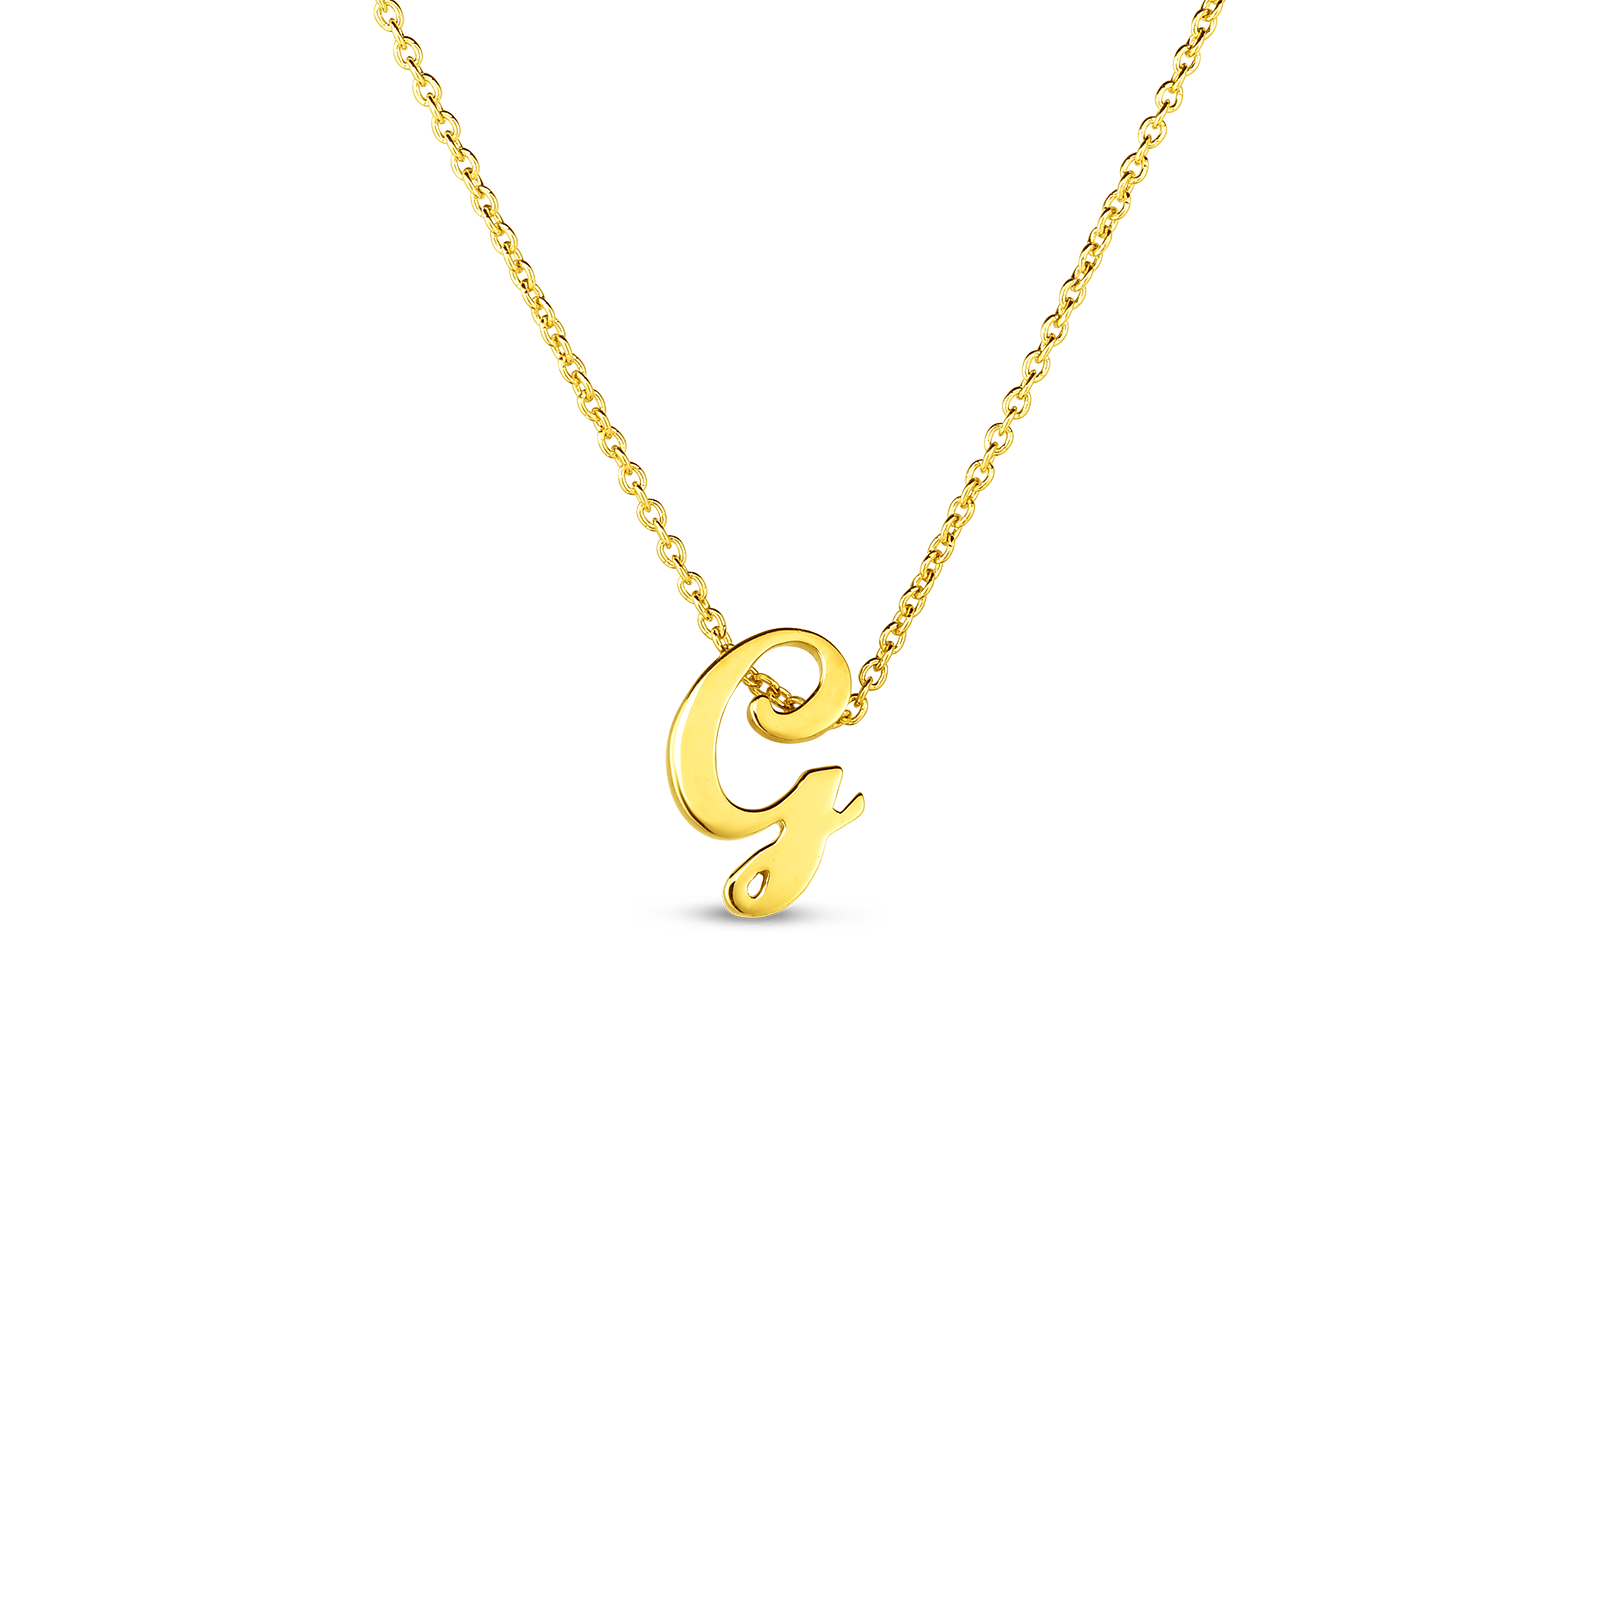 18k Small Script Initial 'G' Pendant On Chain